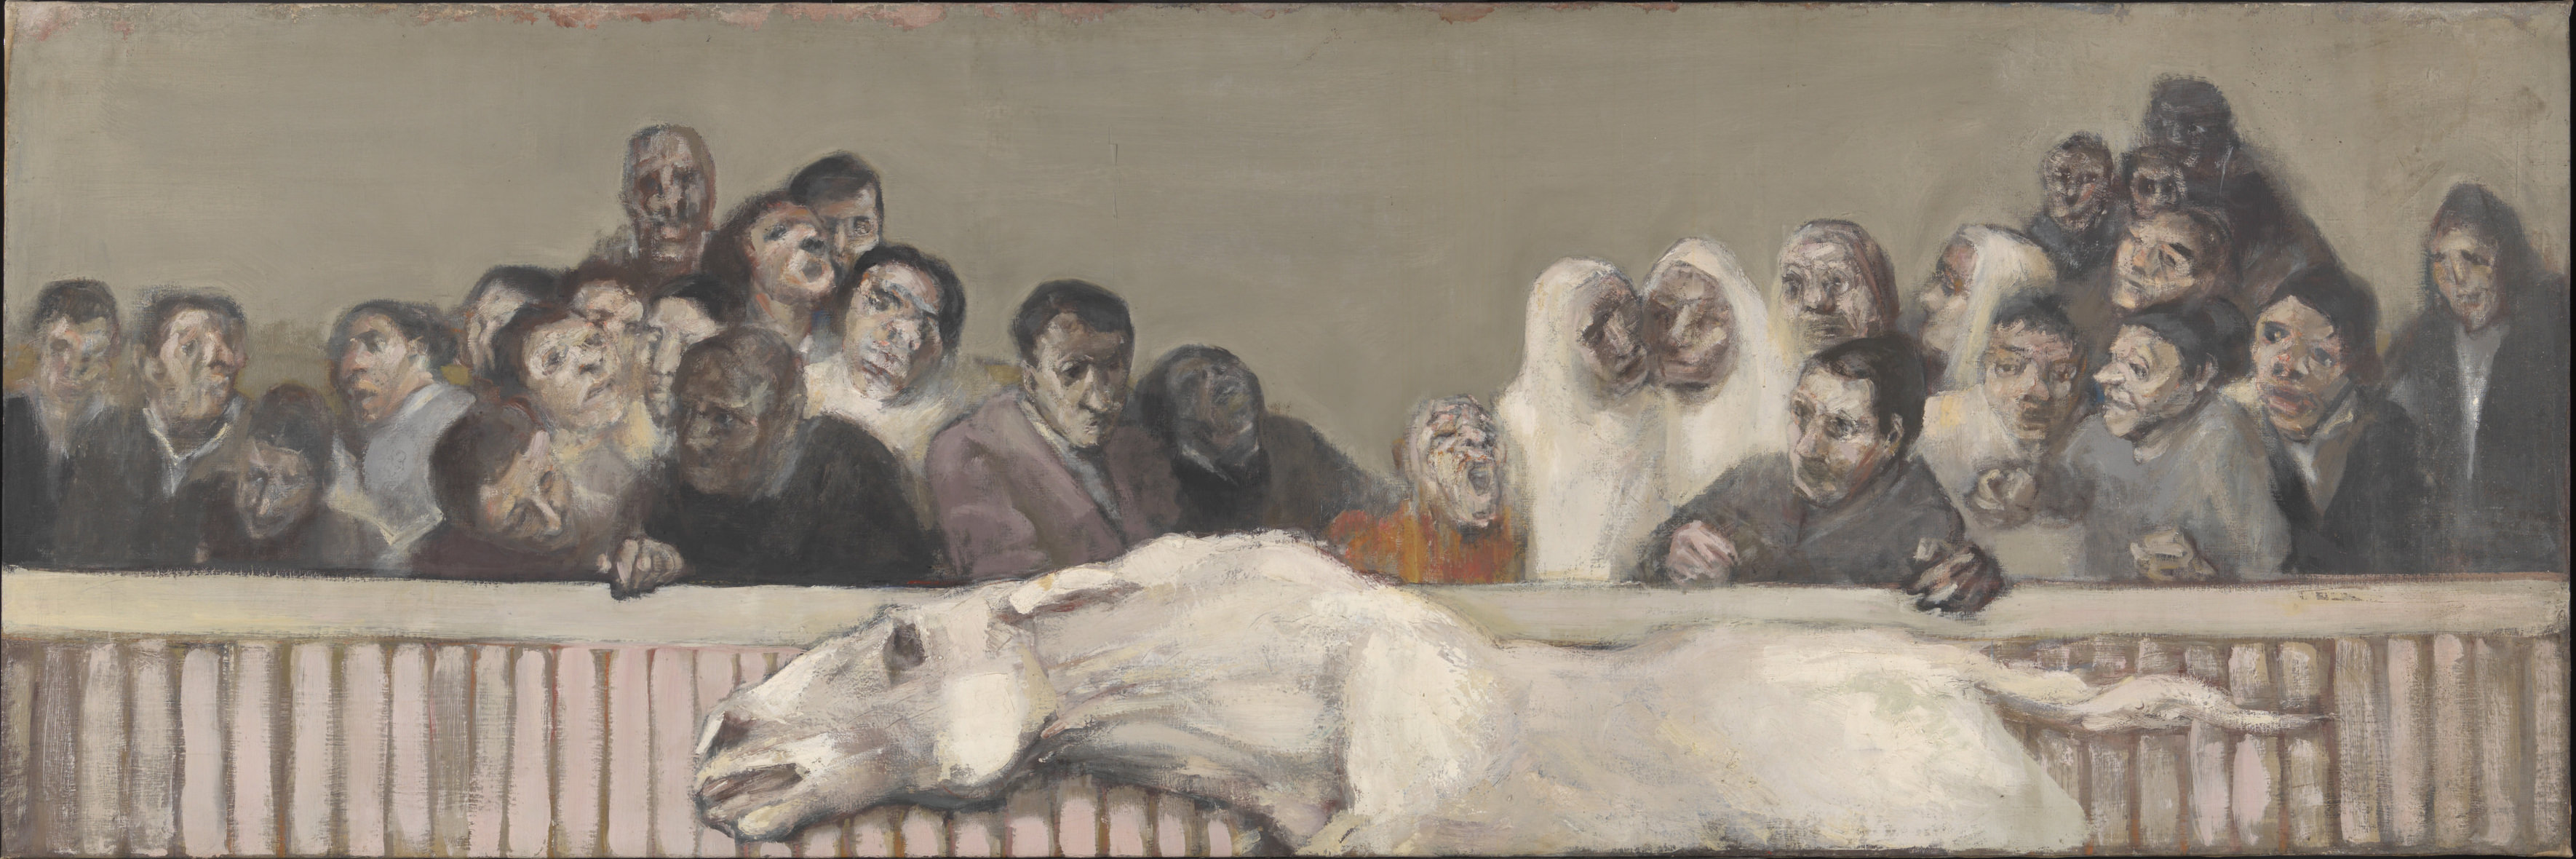 1955–6, oil on canvas, 100 × 300 cm. Collection of Tate (T14296).